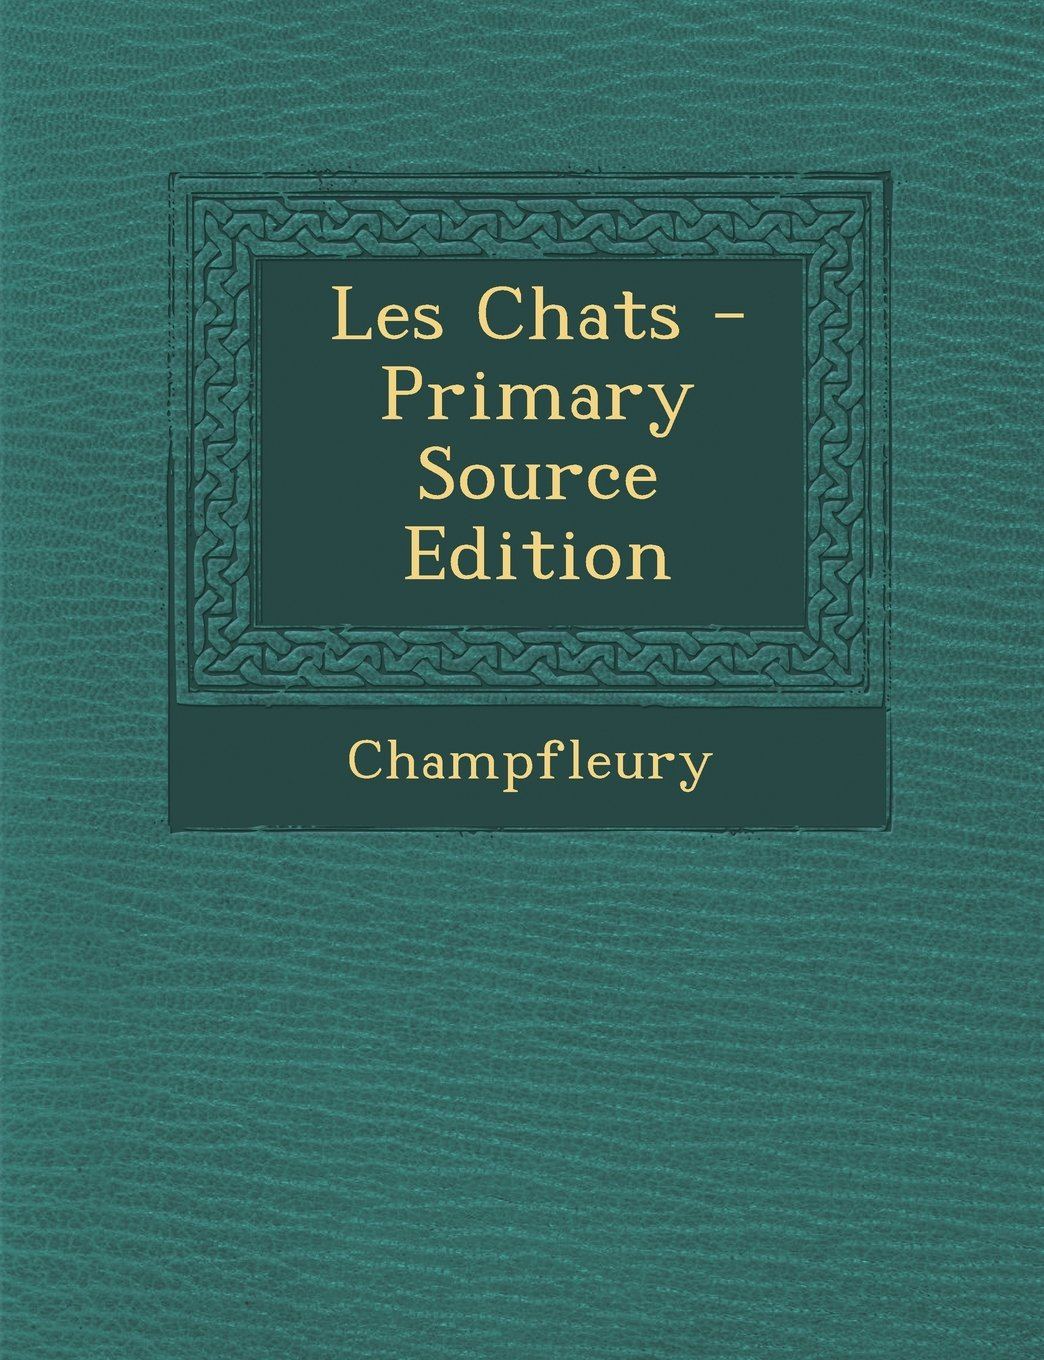 Les Chats - Primary Source Edition (French Edition) pdf